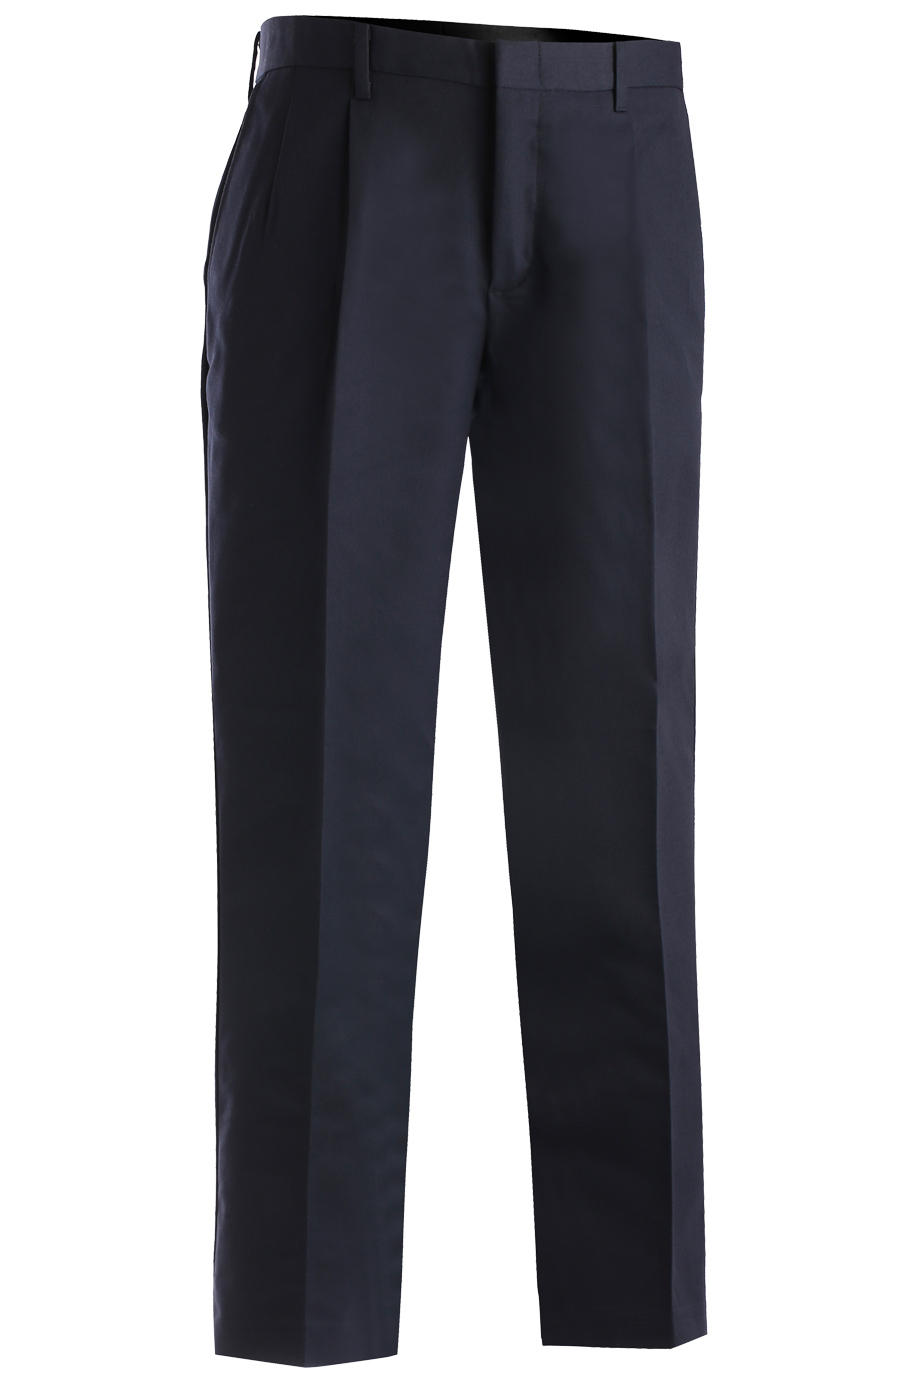 Edwards Mens Business Casual Pleated Chino Pant-Edwards